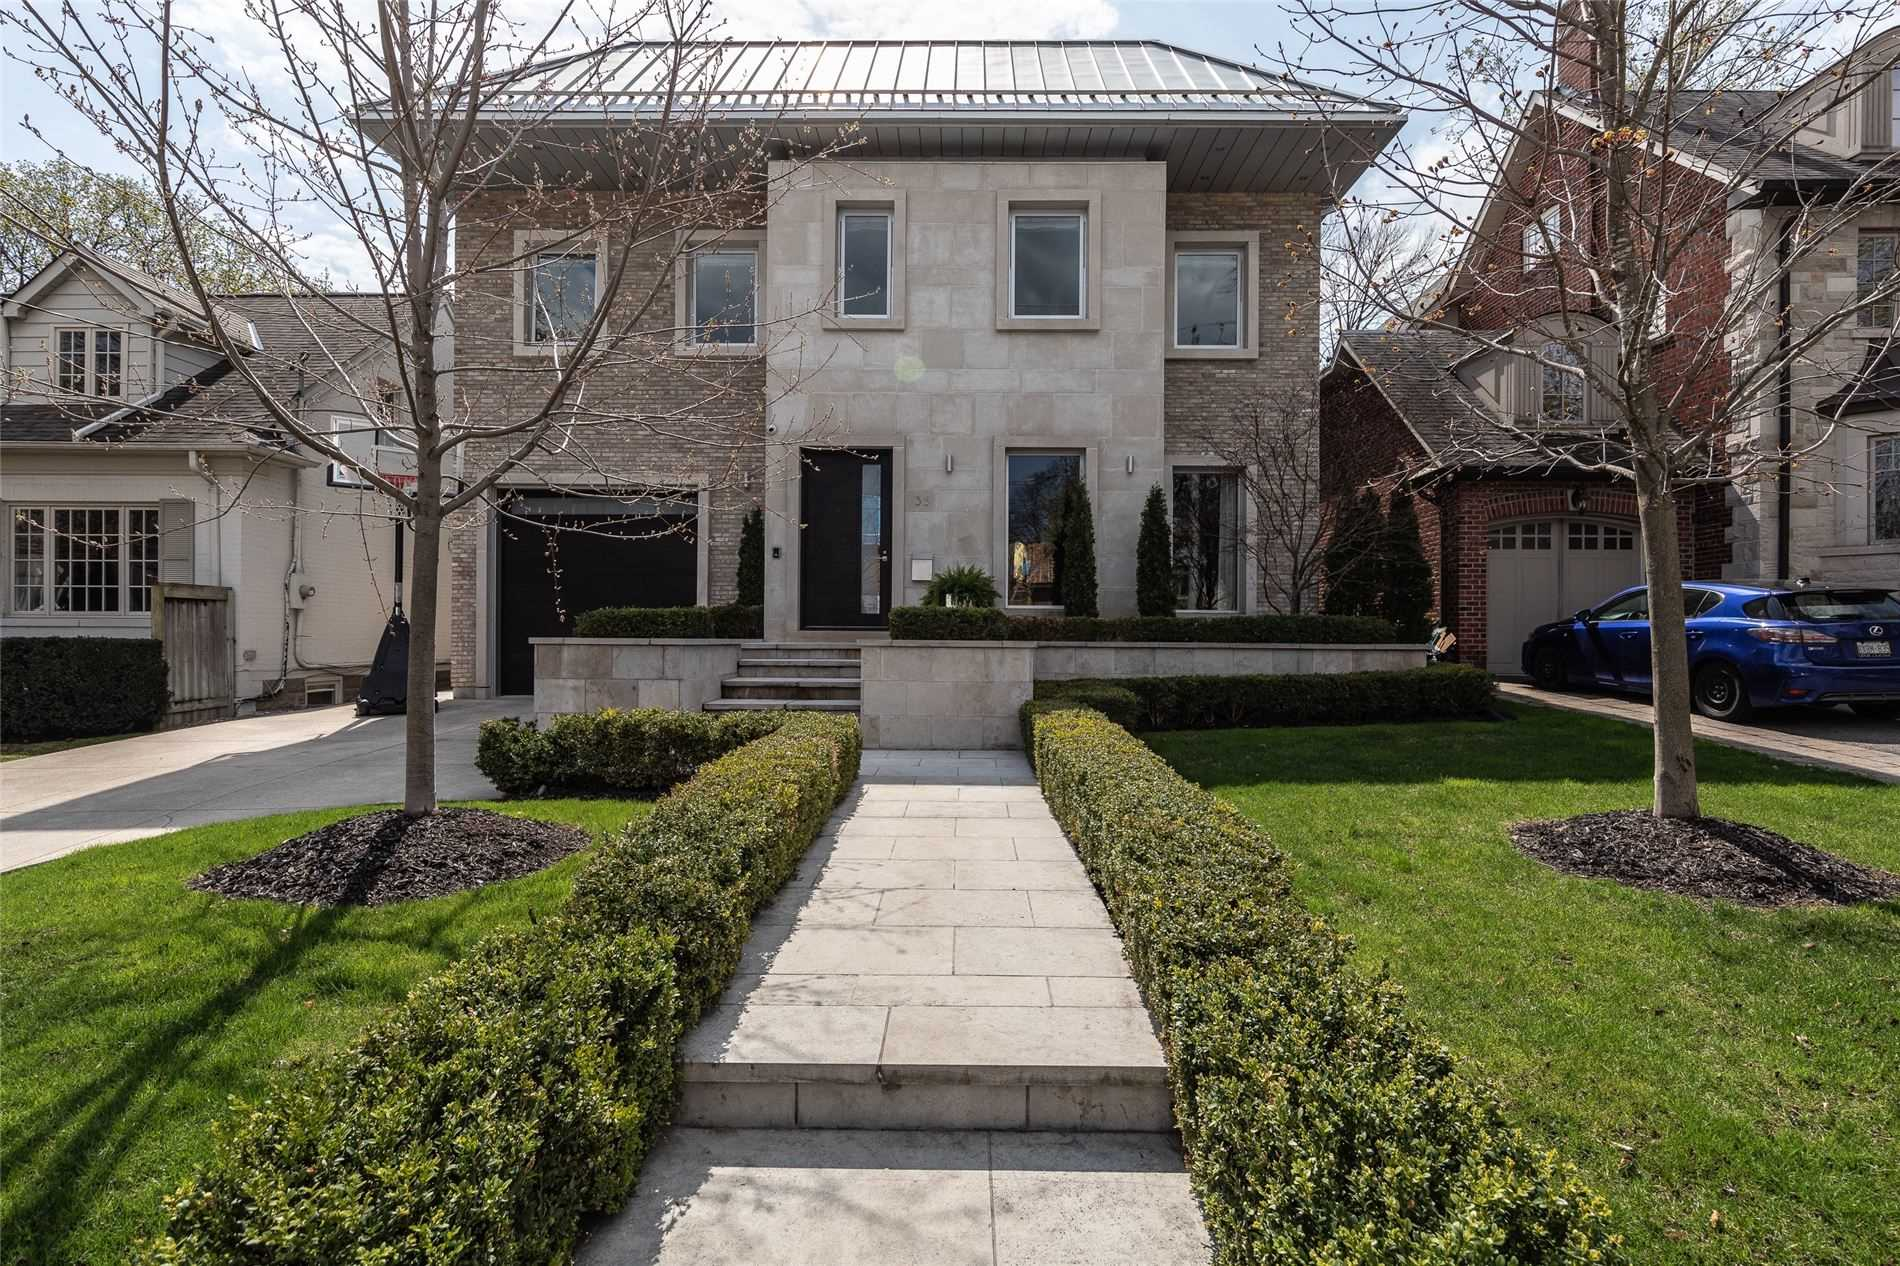 35 Rochester Ave, Toronto, Ontario M4N1N7, 4 Bedrooms Bedrooms, 11 Rooms Rooms,5 BathroomsBathrooms,Detached,For Sale,Rochester,C5212675